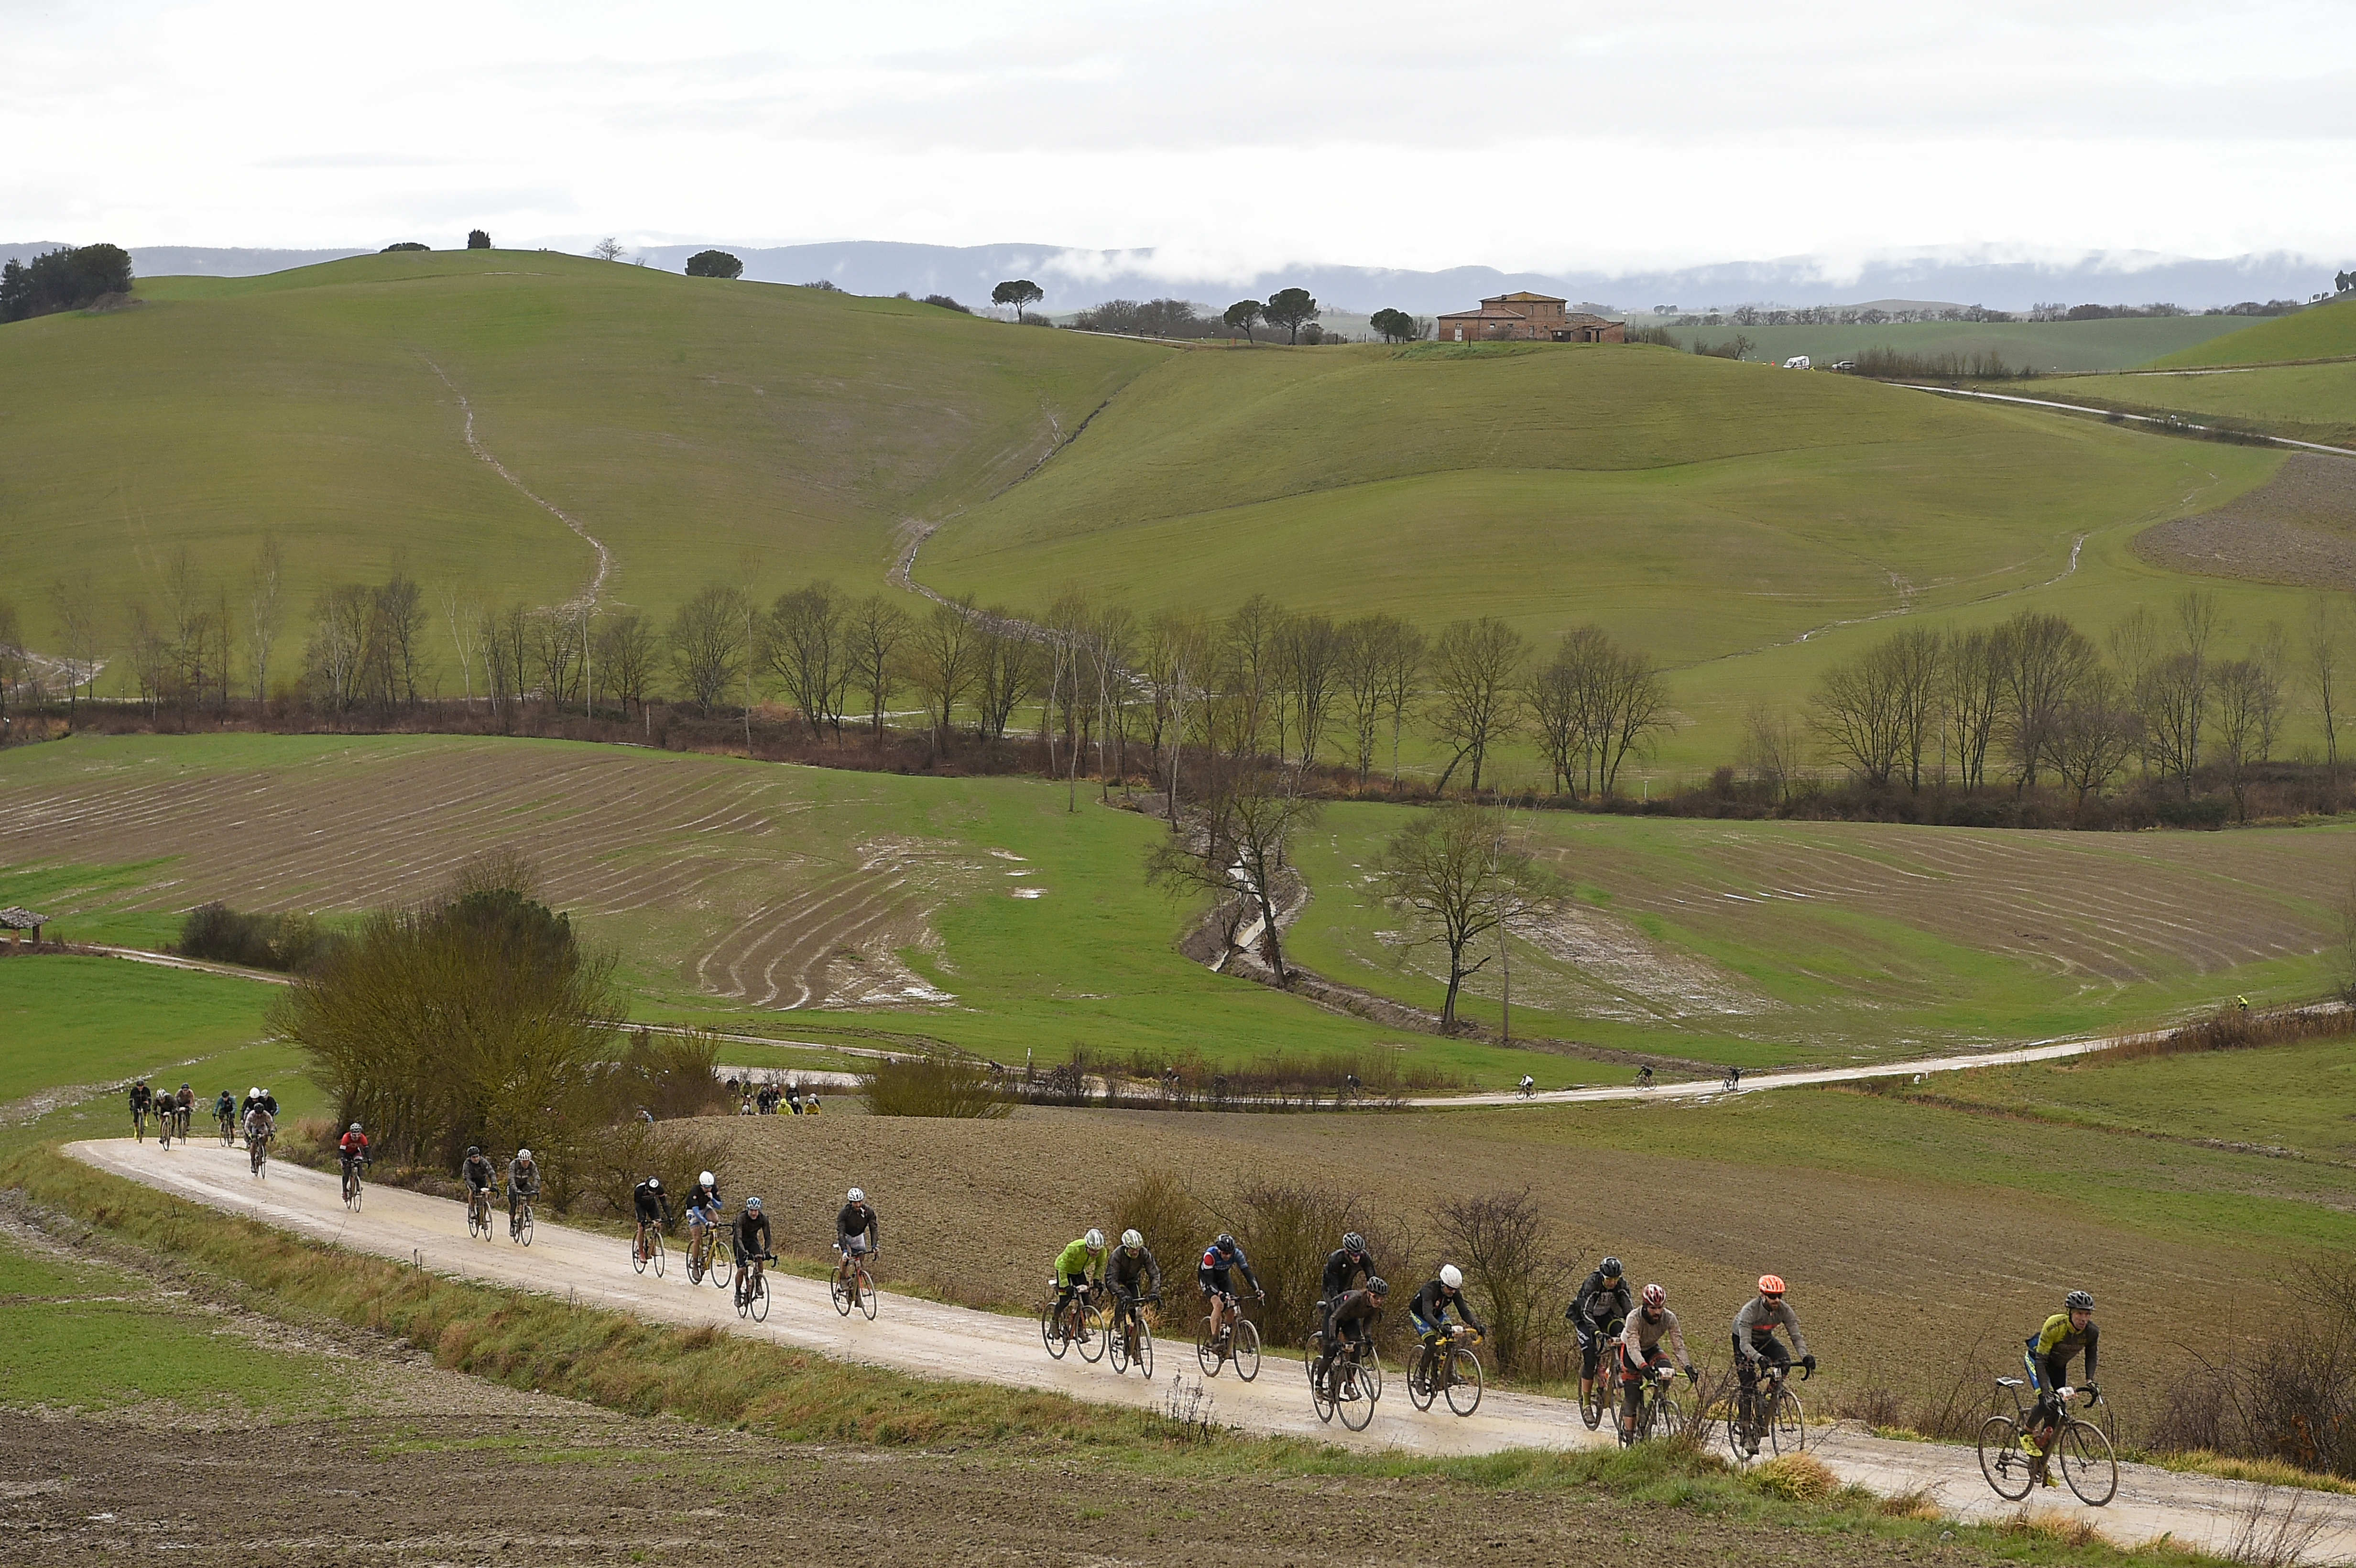 An exceptional landscape for the Gran Fondo Strade Bianche